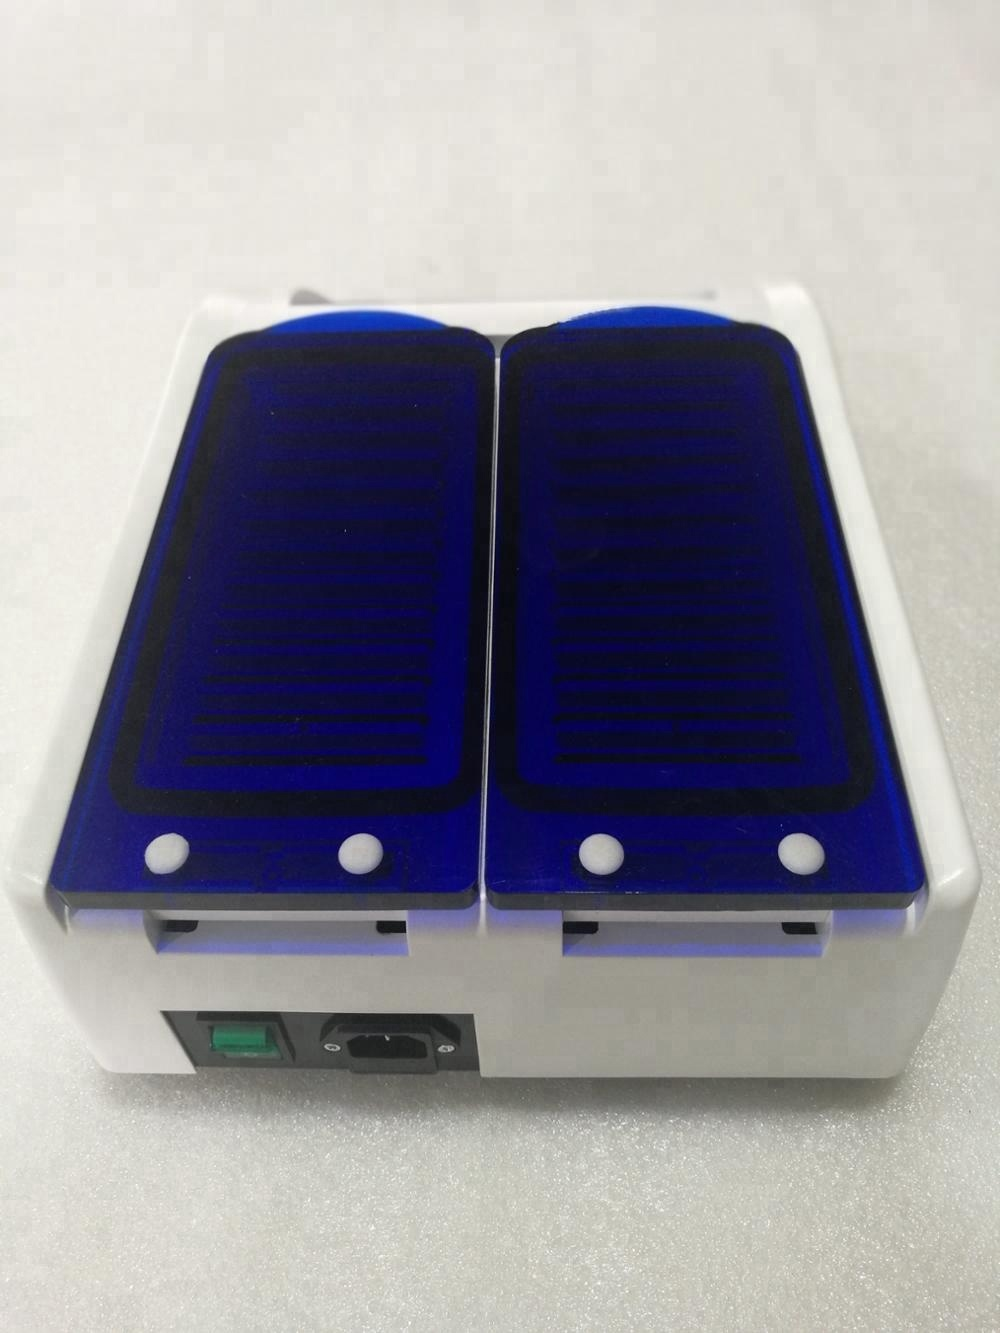 24 card ID card Gel Card Incubator for Blood Grouping for sale